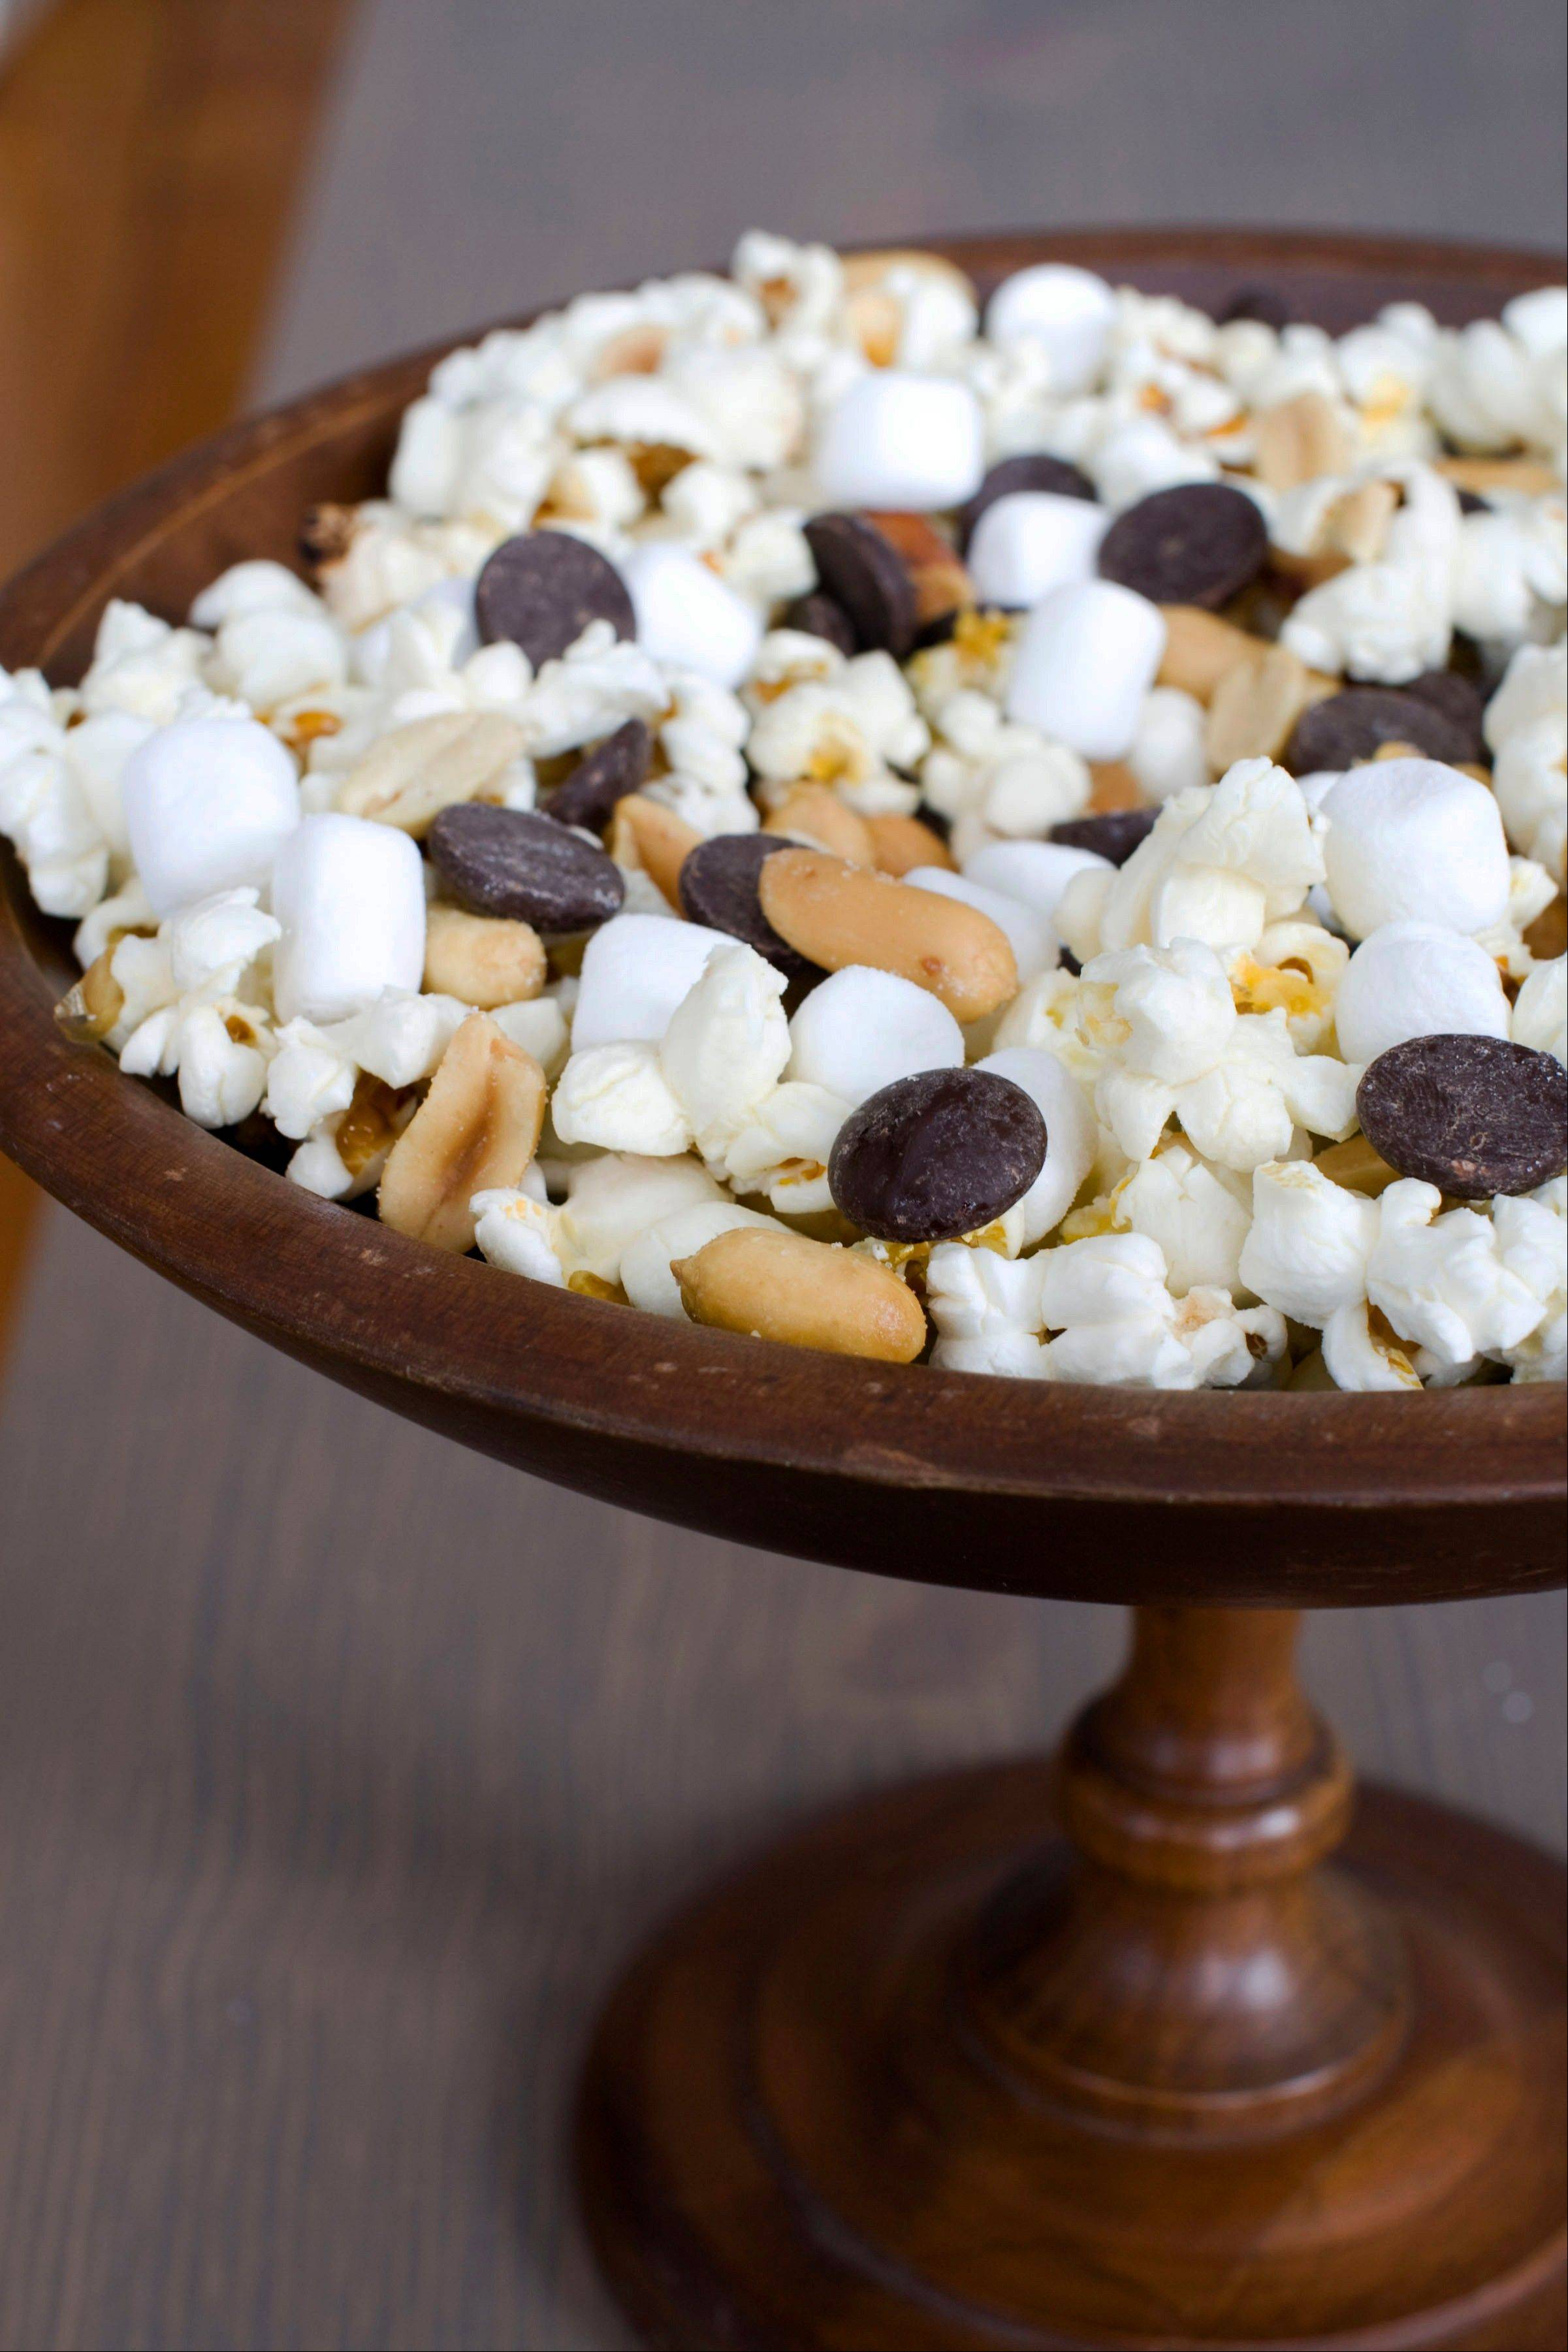 Mini marshmallows, chocolate chips and salted peanuts dress up popcorn for Oscar night.